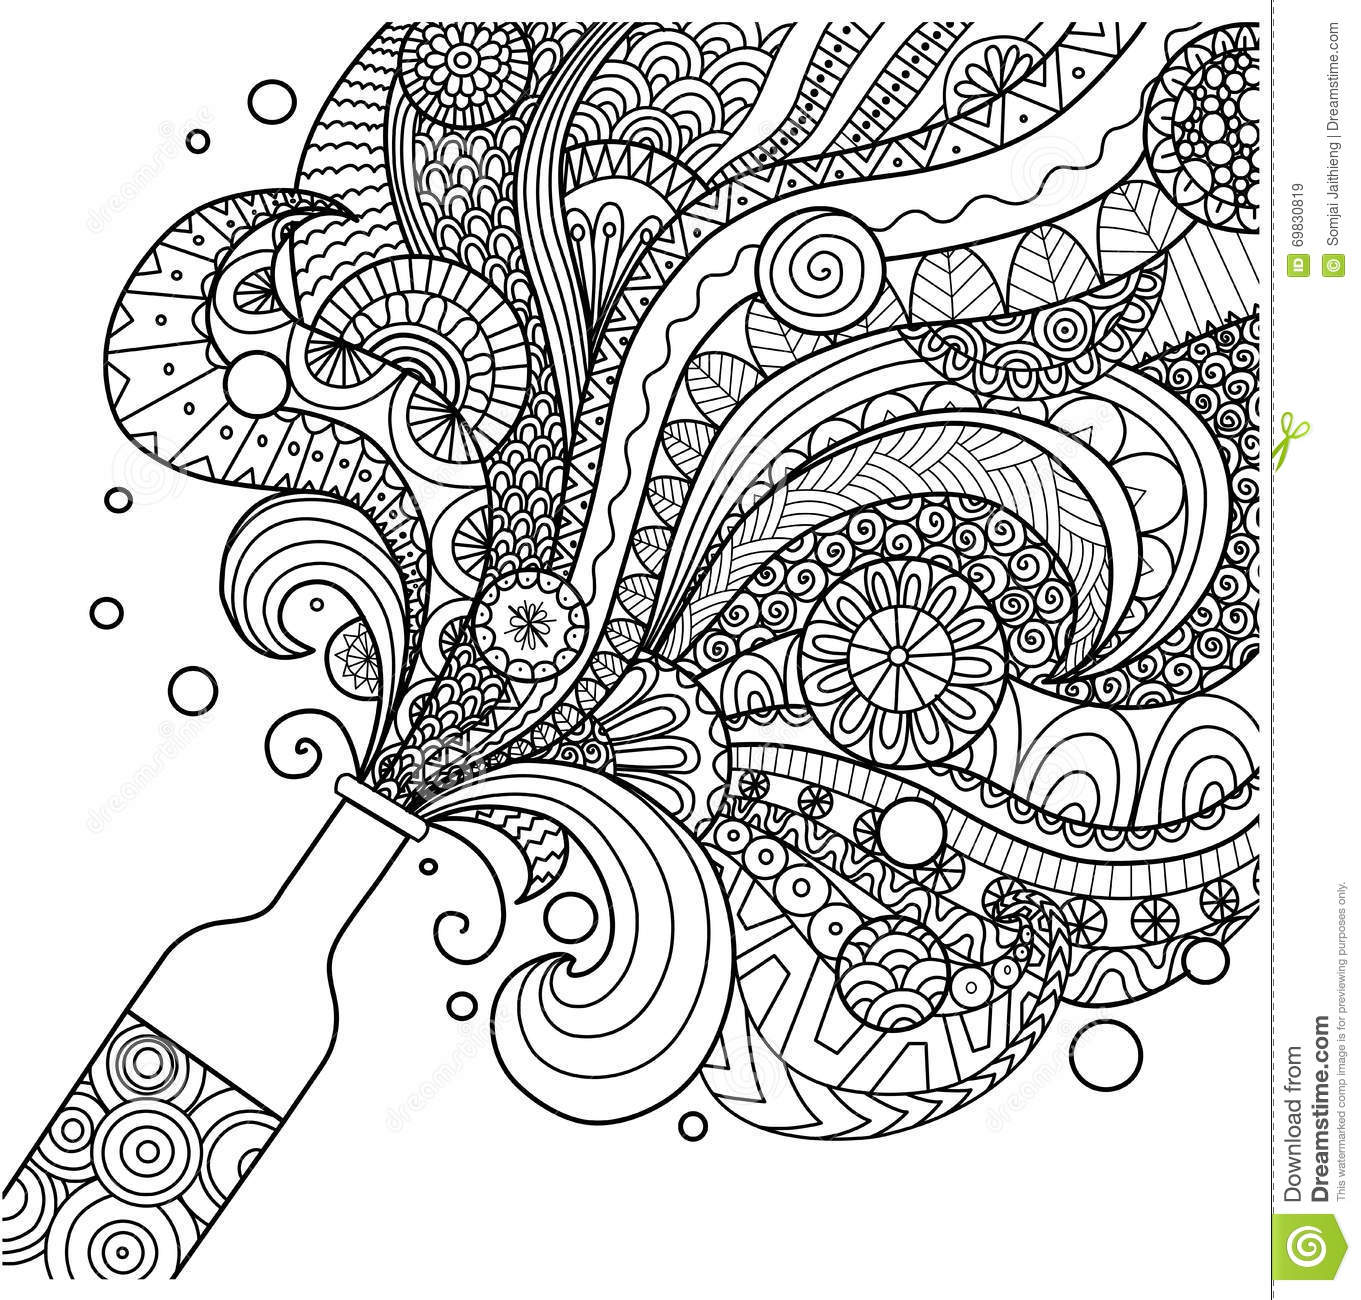 Line Art Book : Champagne bottle line art design for coloring book